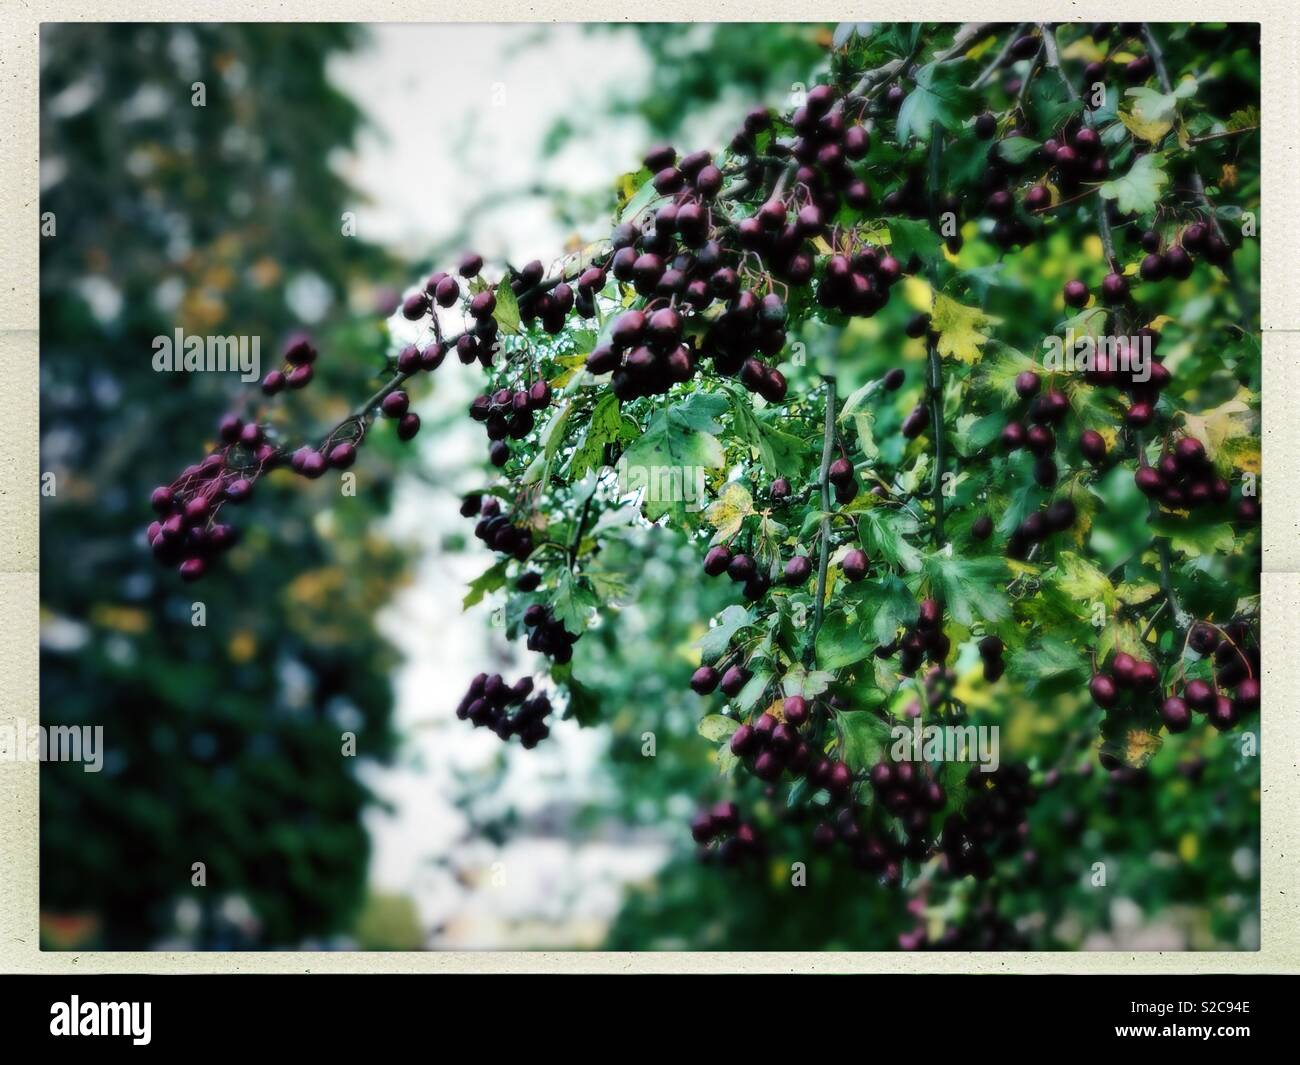 Autumn berries in Cambuslang Scotland - Stock Image